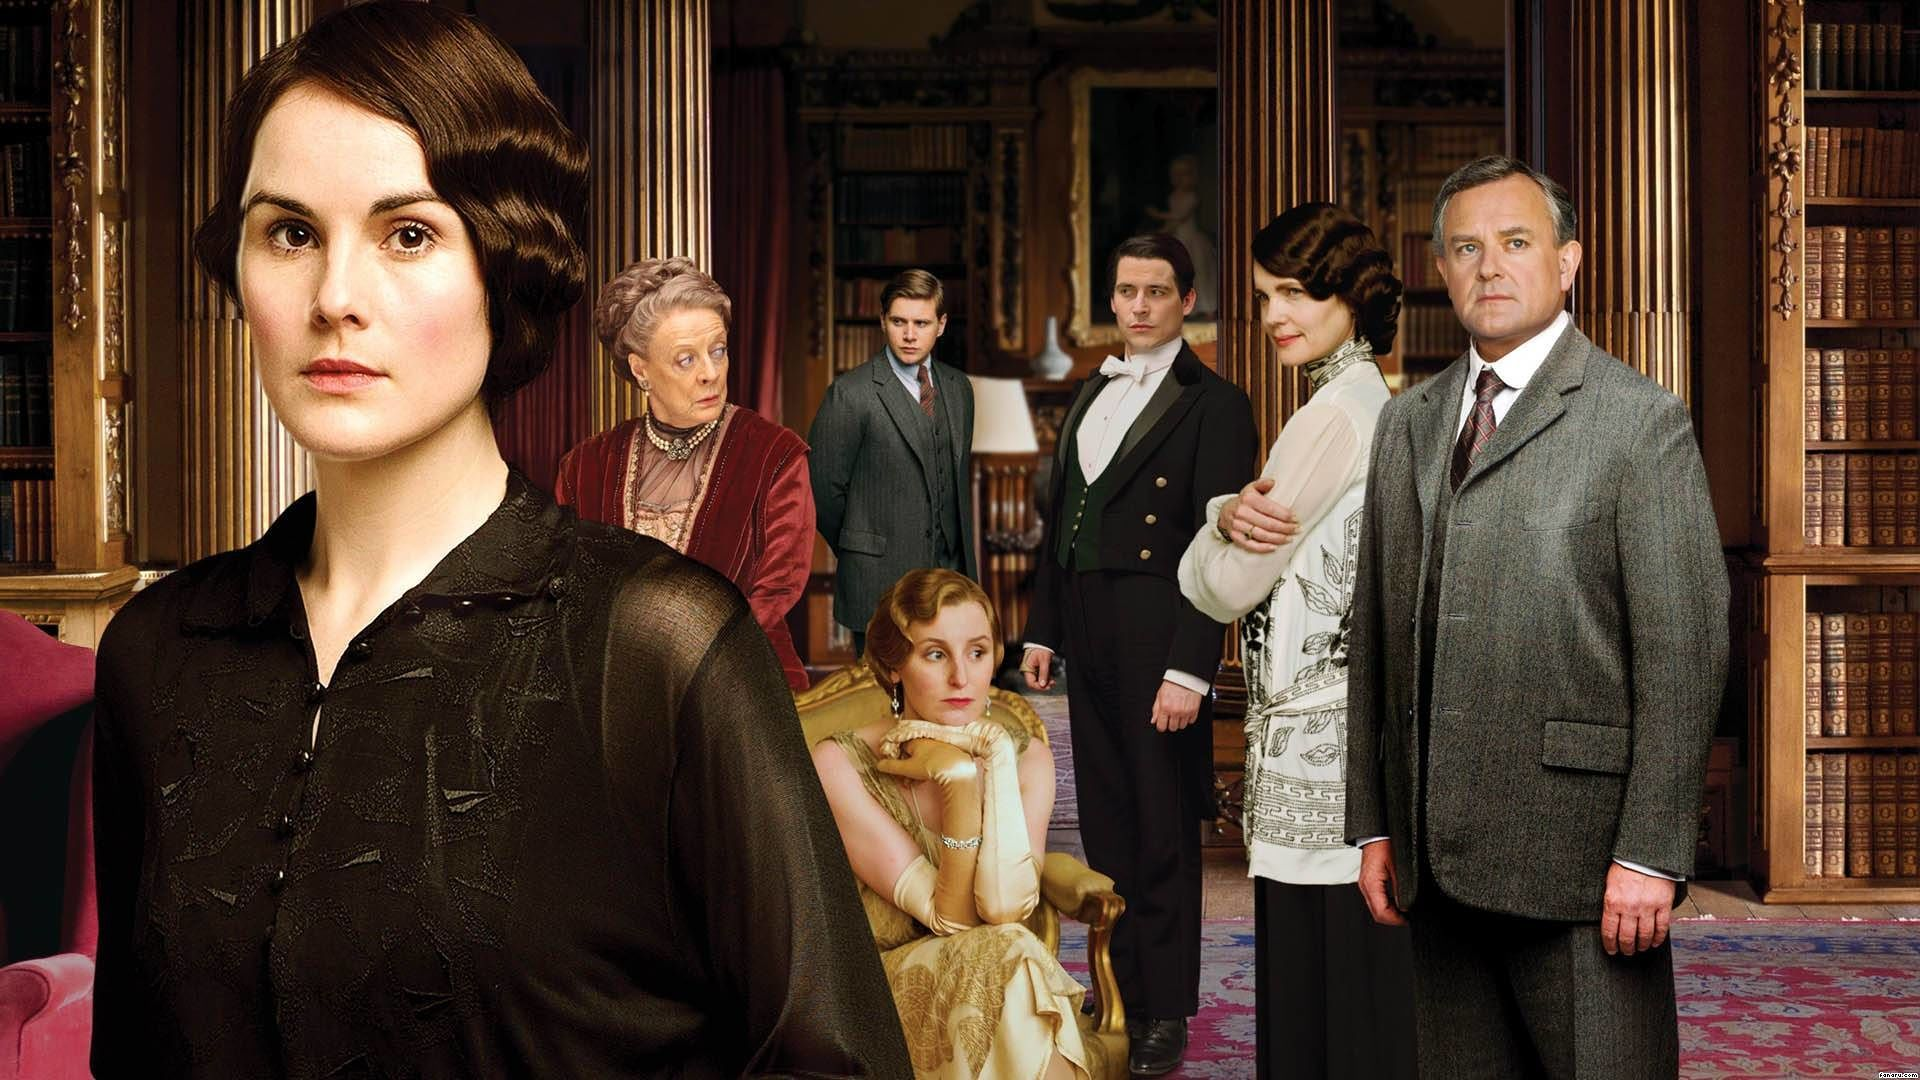 downton abbey season 6 2015 images